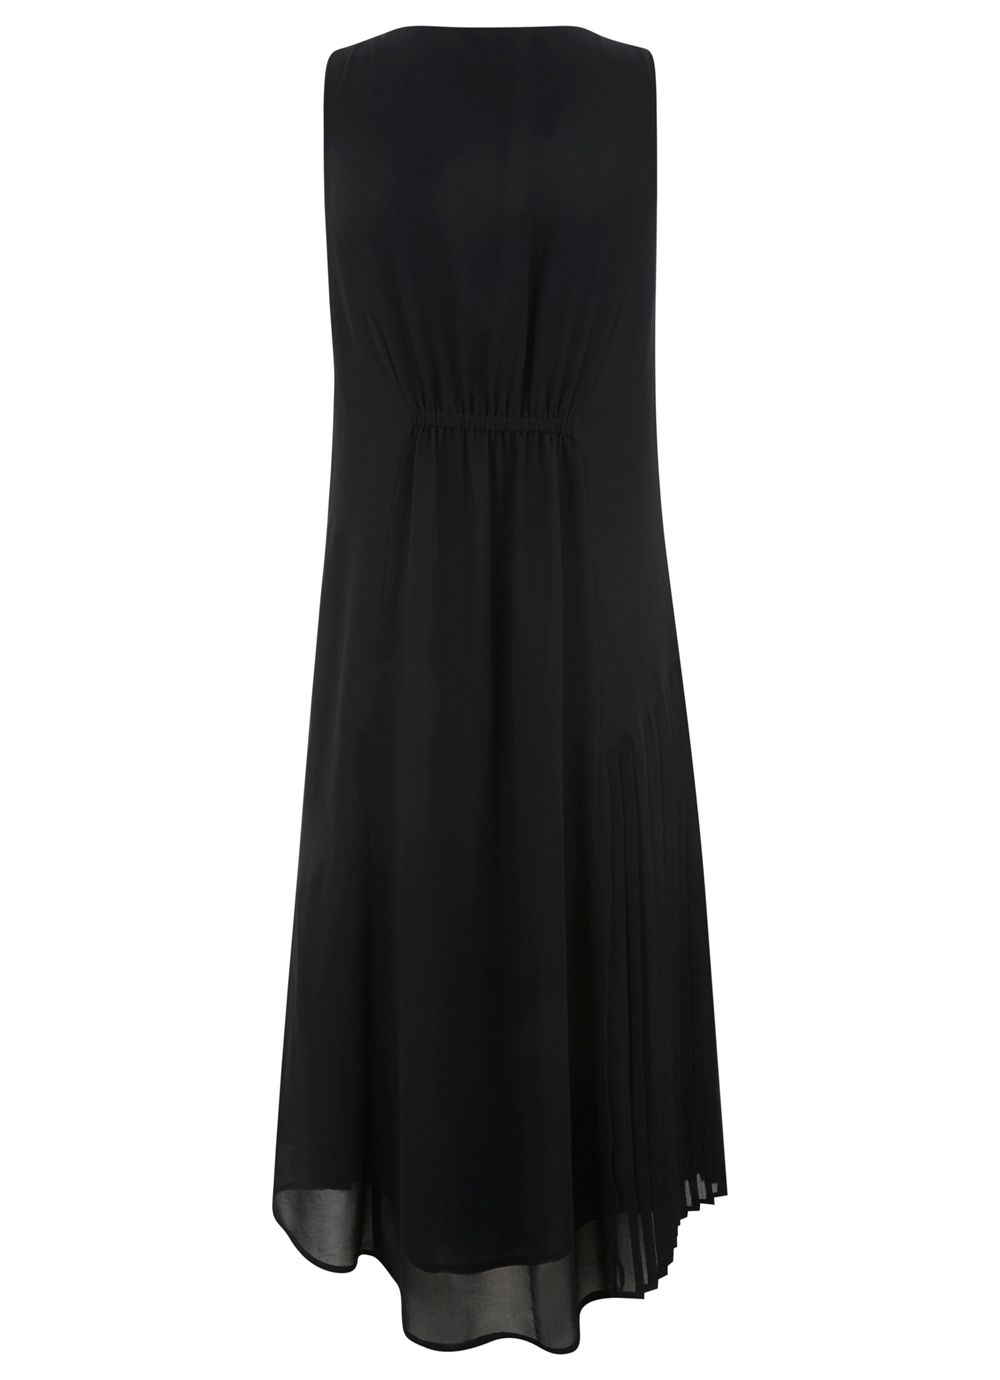 Black pleat & stud dress